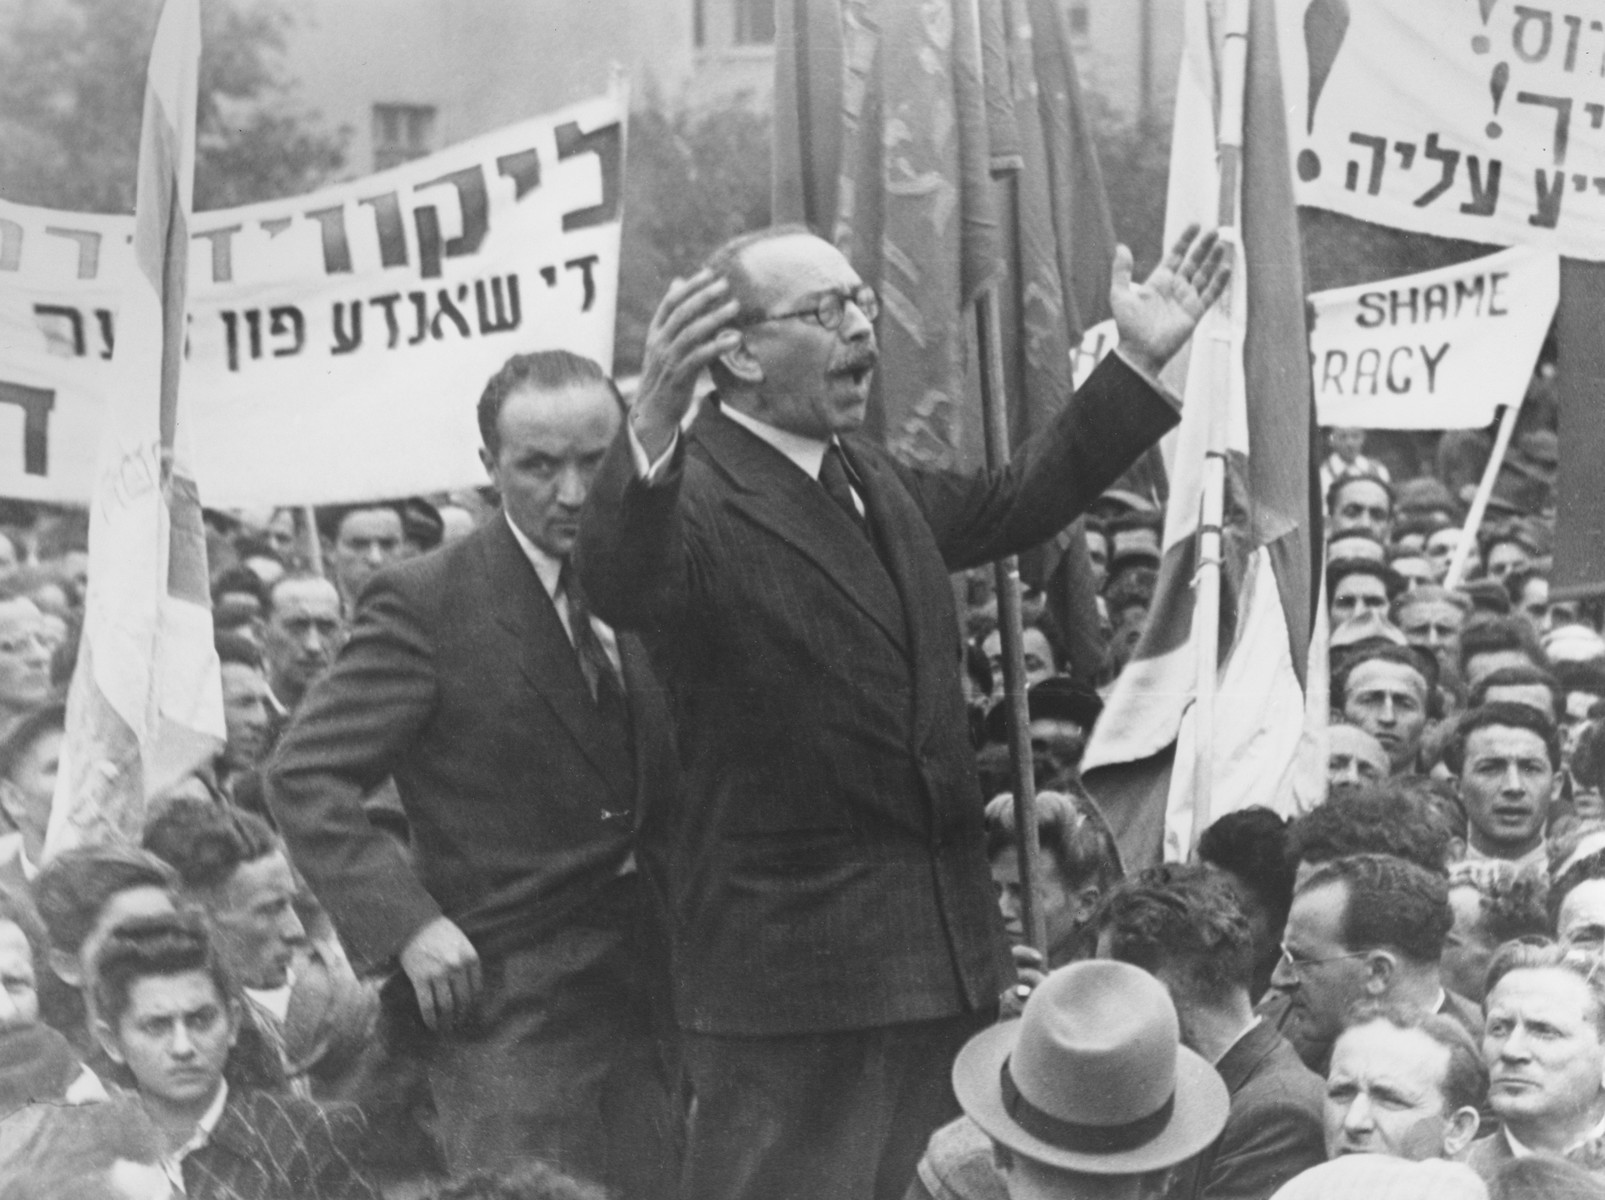 Marc Jarblum addresses a crowd of Jewish DPs at a demonstration in the Bergen-Belsen displaced persons camp that called for free immigration to Palestine and protested the return of the Exodus 1947 passengers to Germany.   Also pictured are Josef Rosensaft (standing behind Jarblum) and Norbert Wollheim (in profile on the right, near the front).